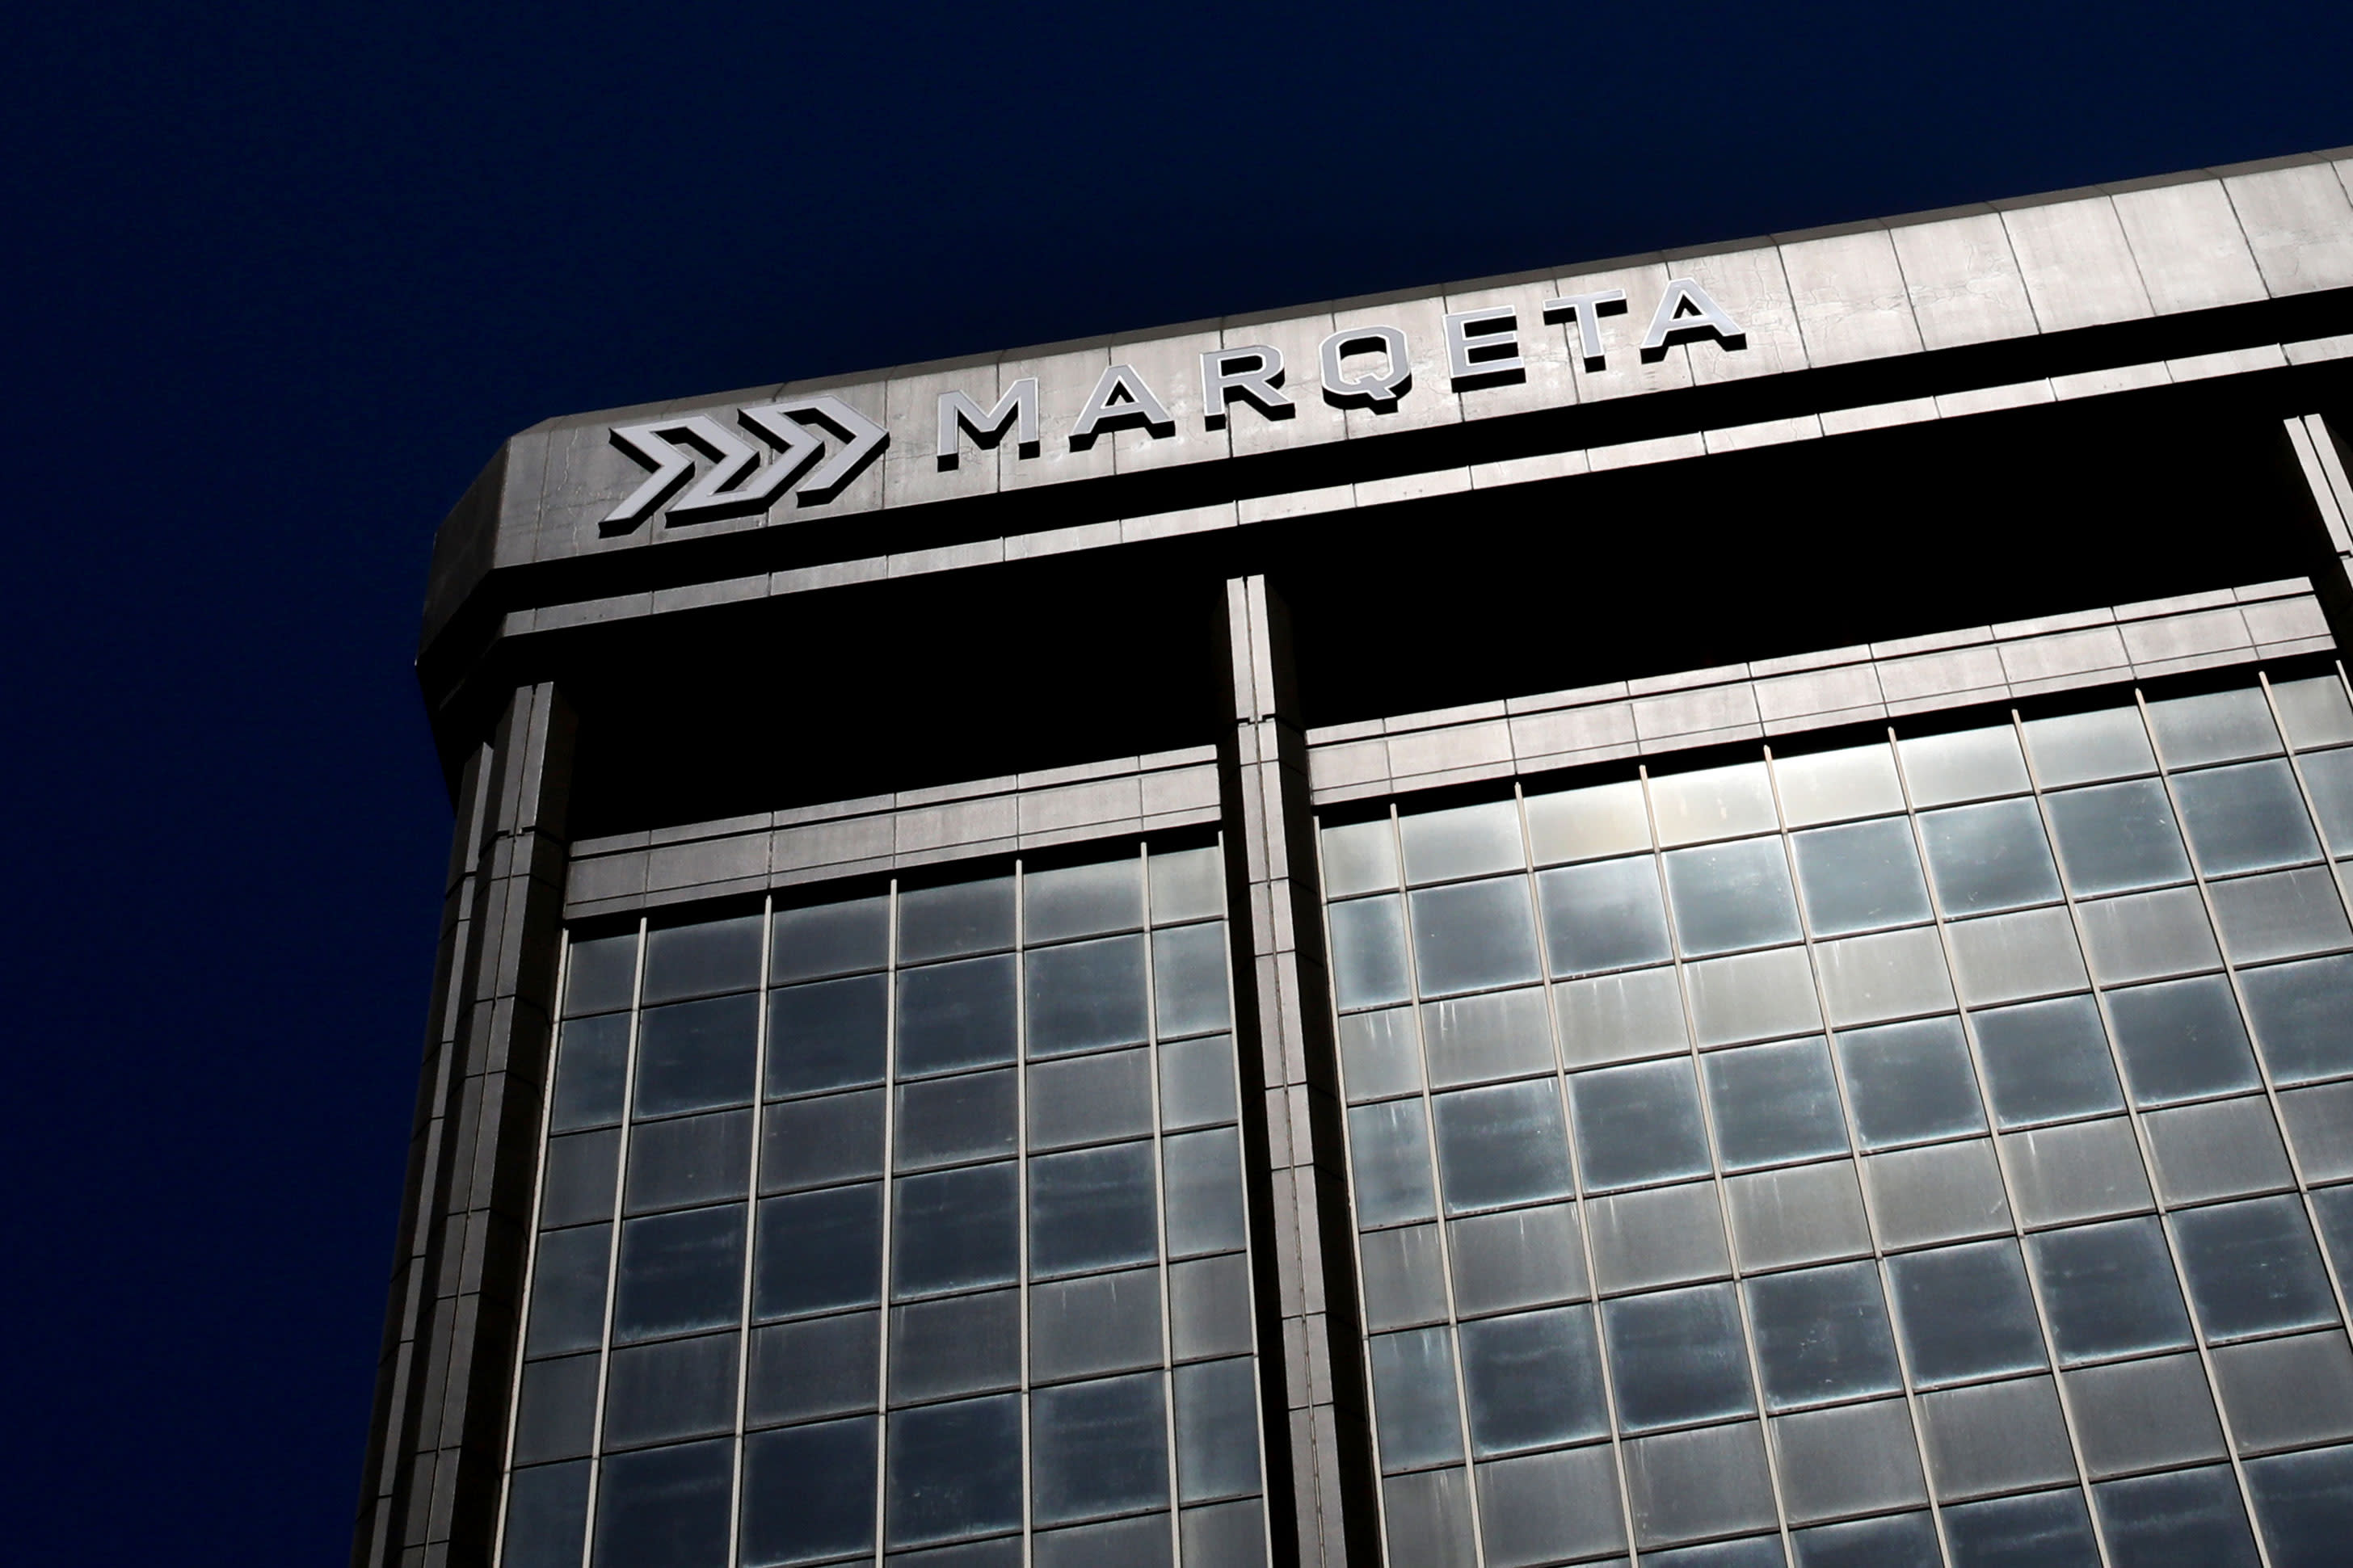 Payment tech company Marqeta files for IPO as value tops $16 billion